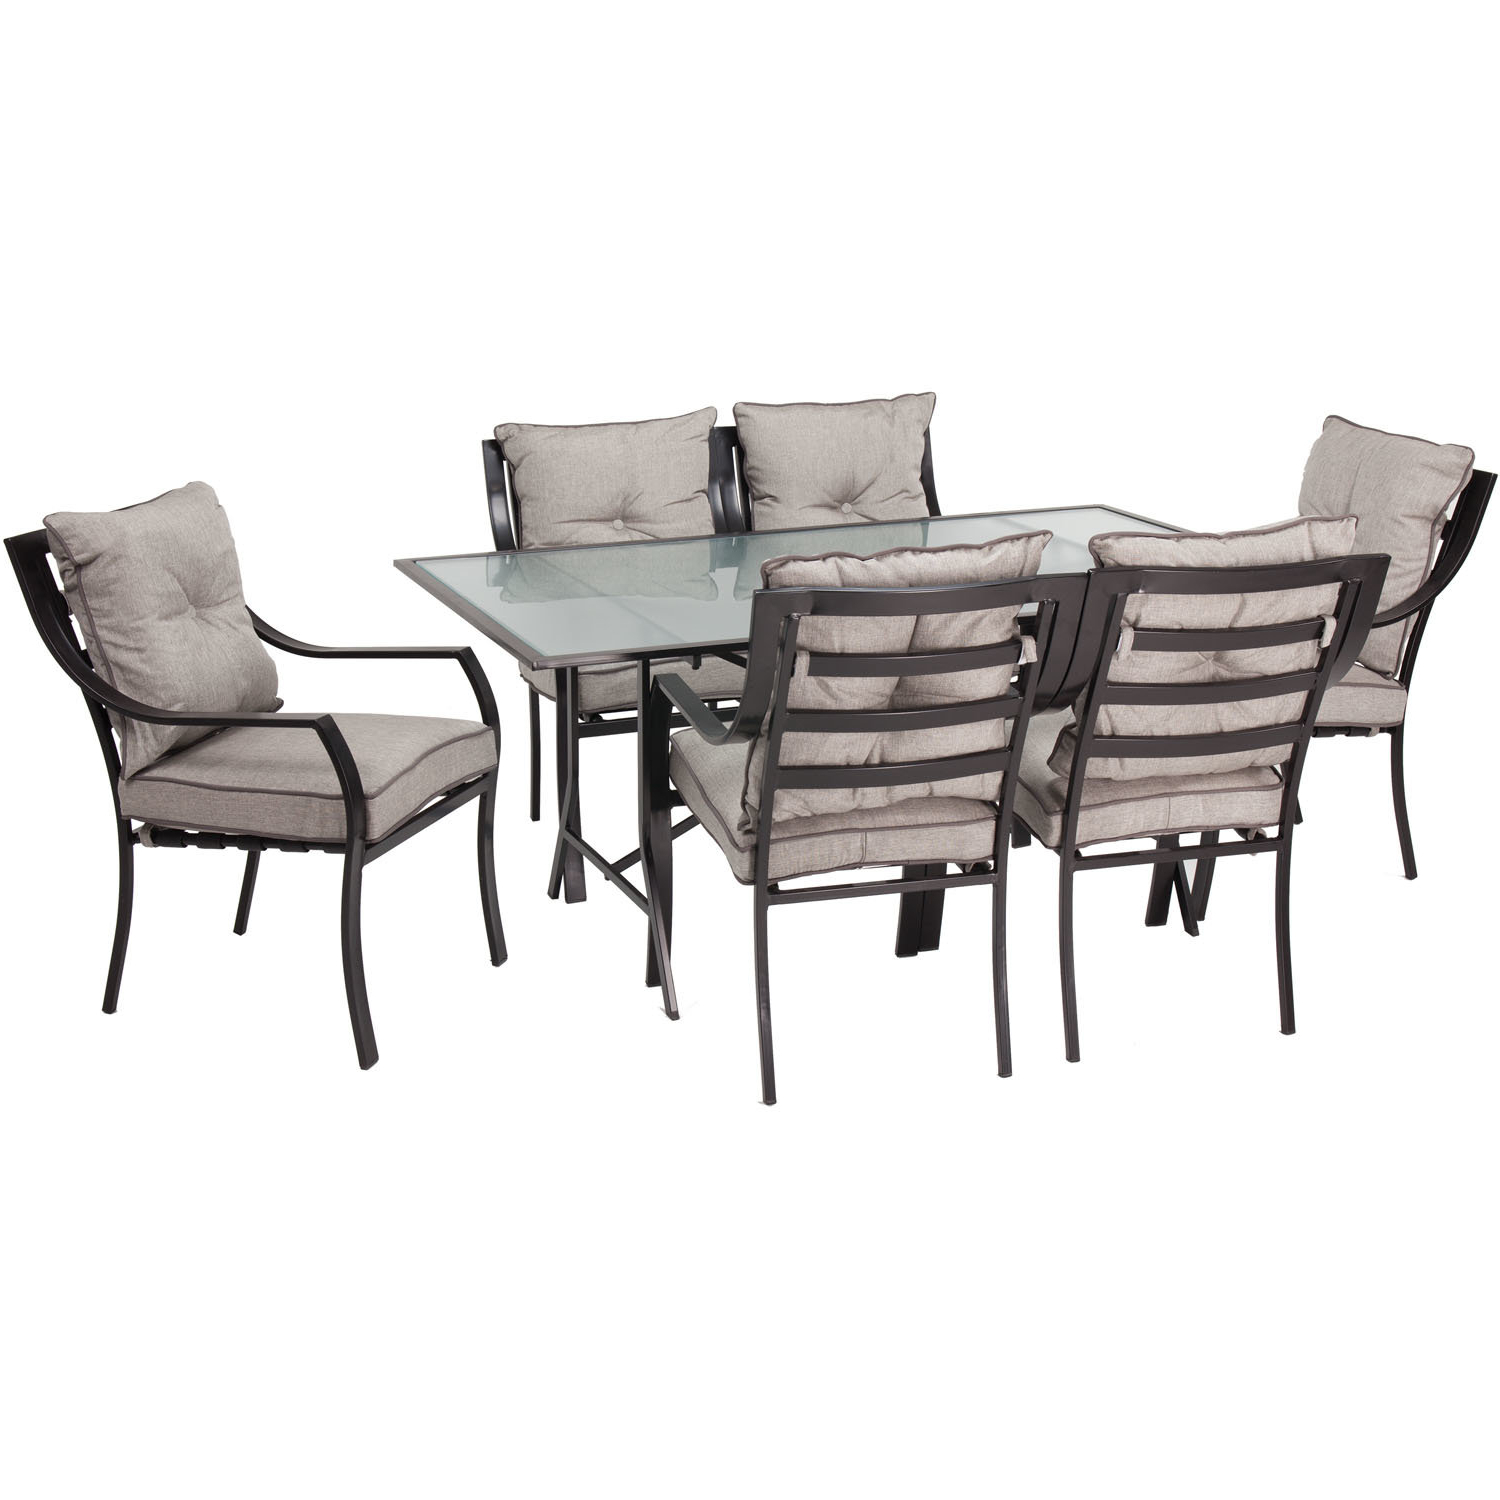 Bozarth 7 Piece Dining Set With Cushion (View 2 of 25)